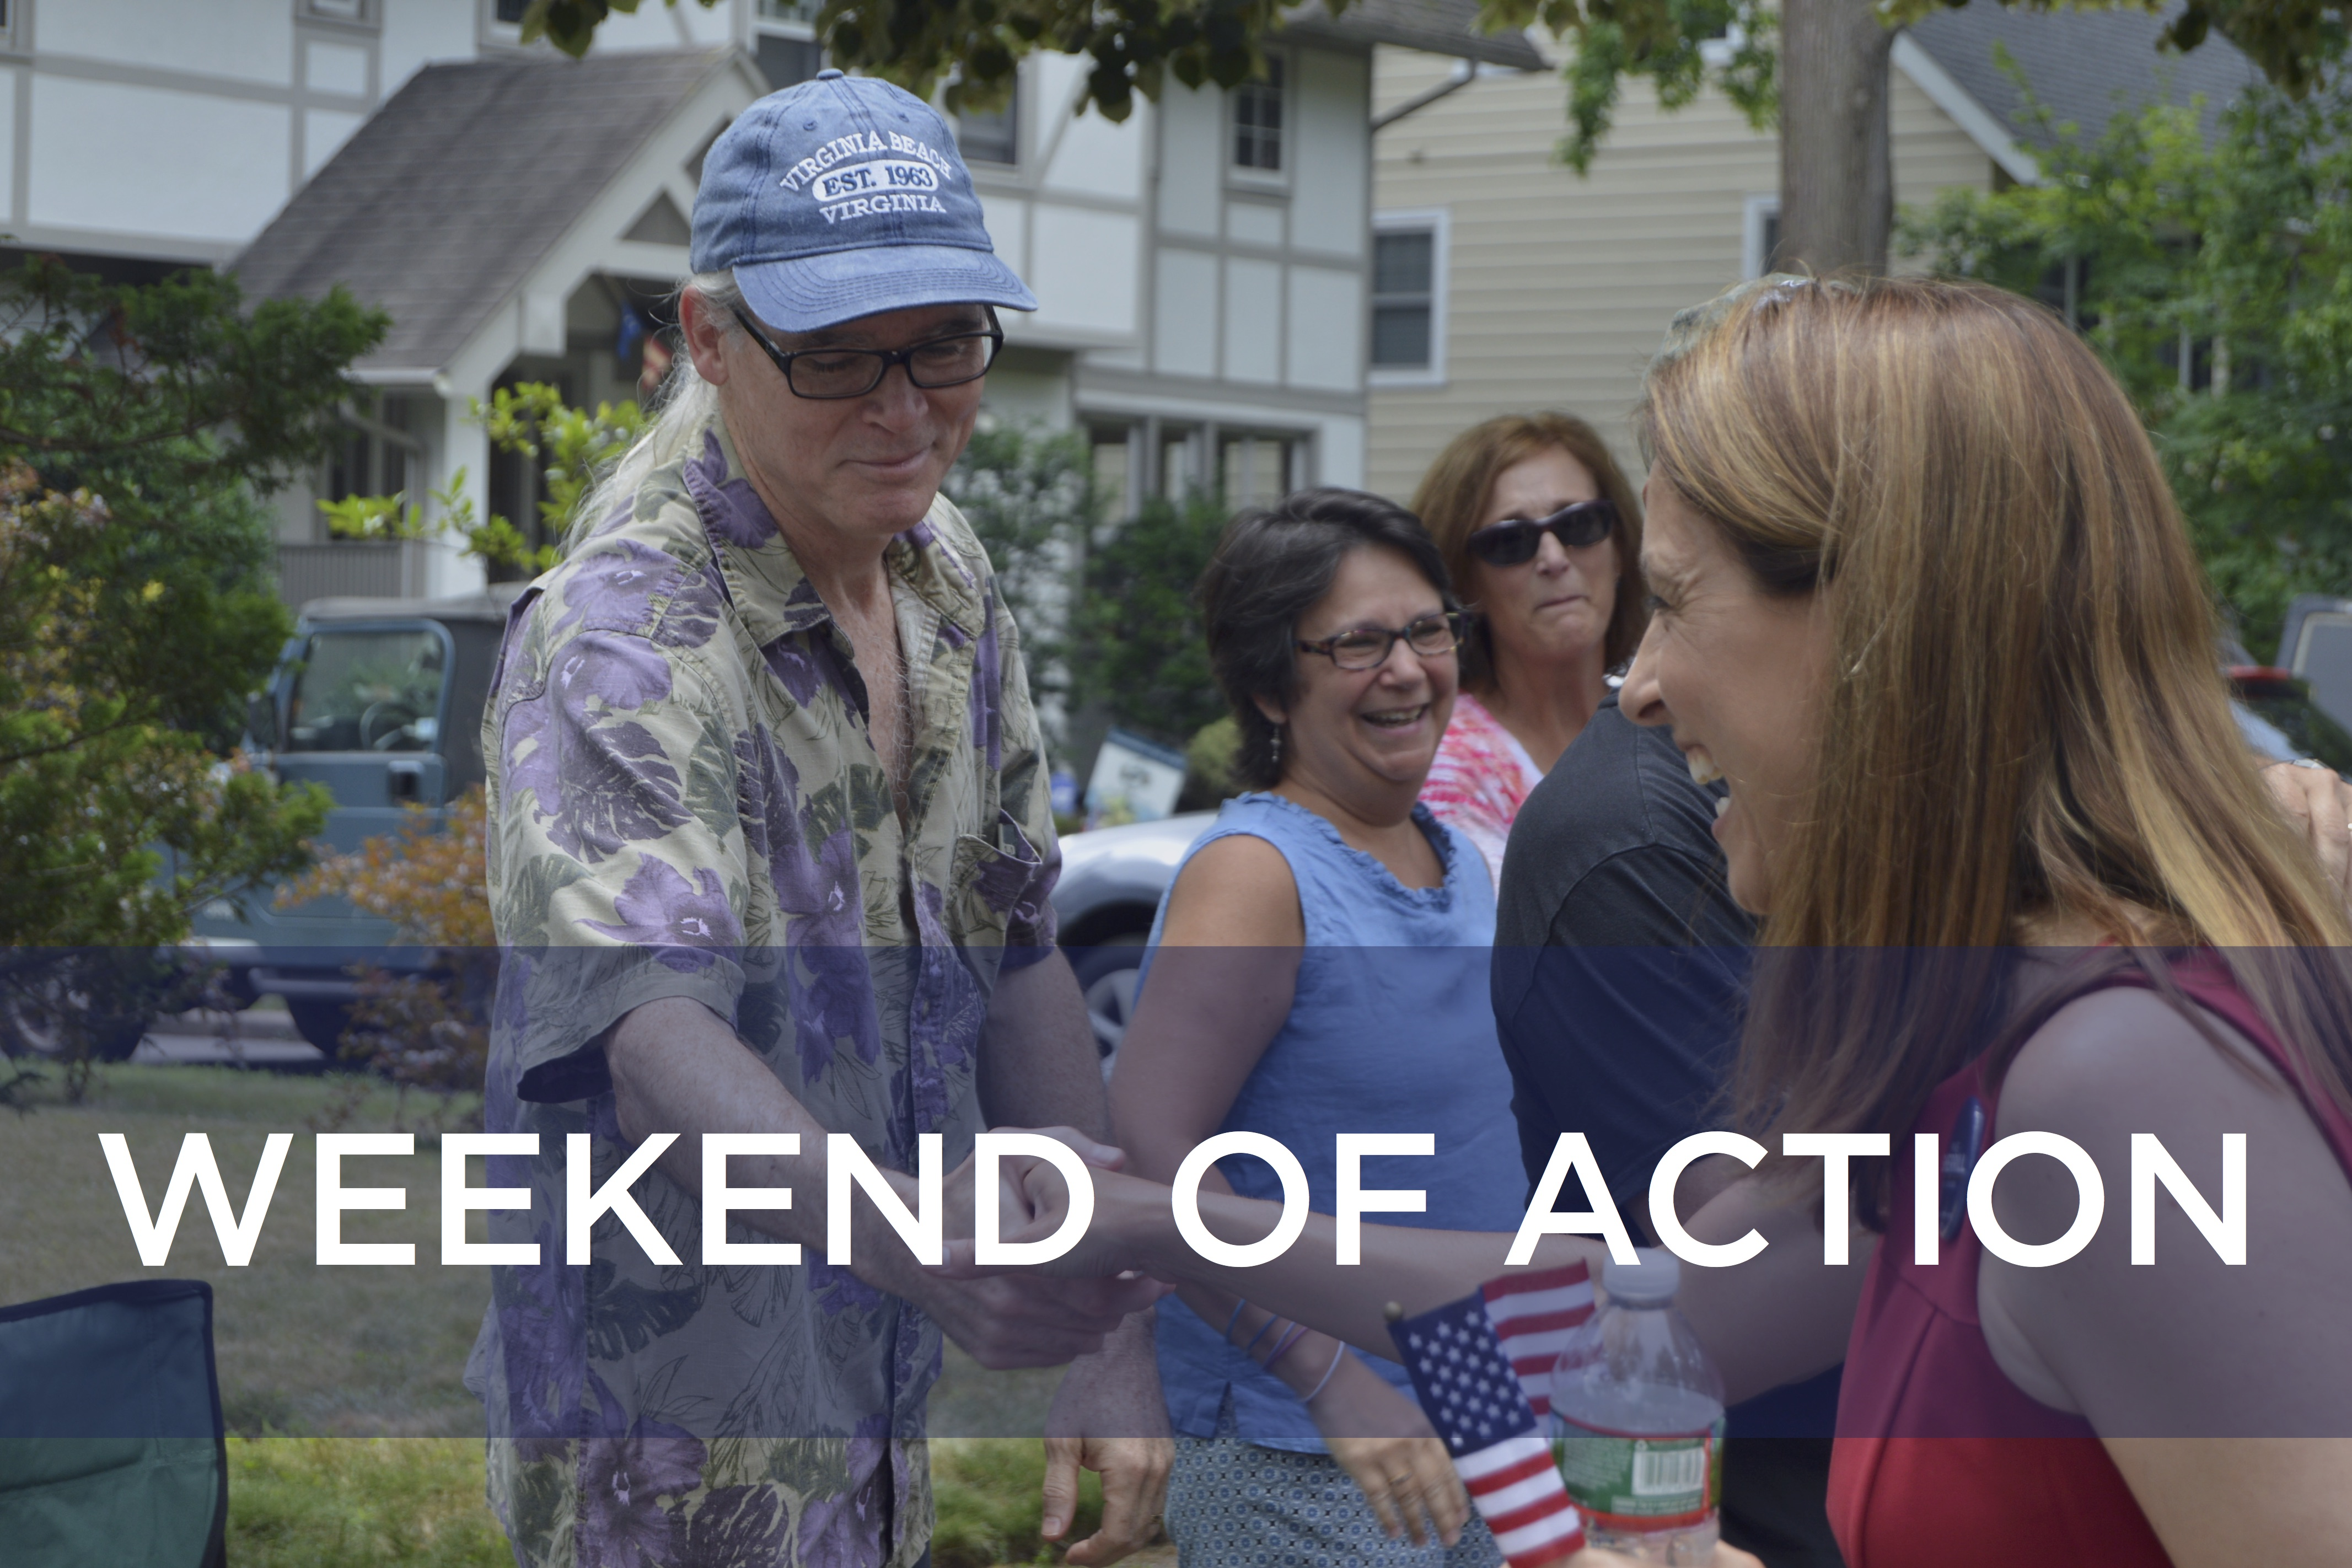 WEEKEND OF ACTION - Stanhope